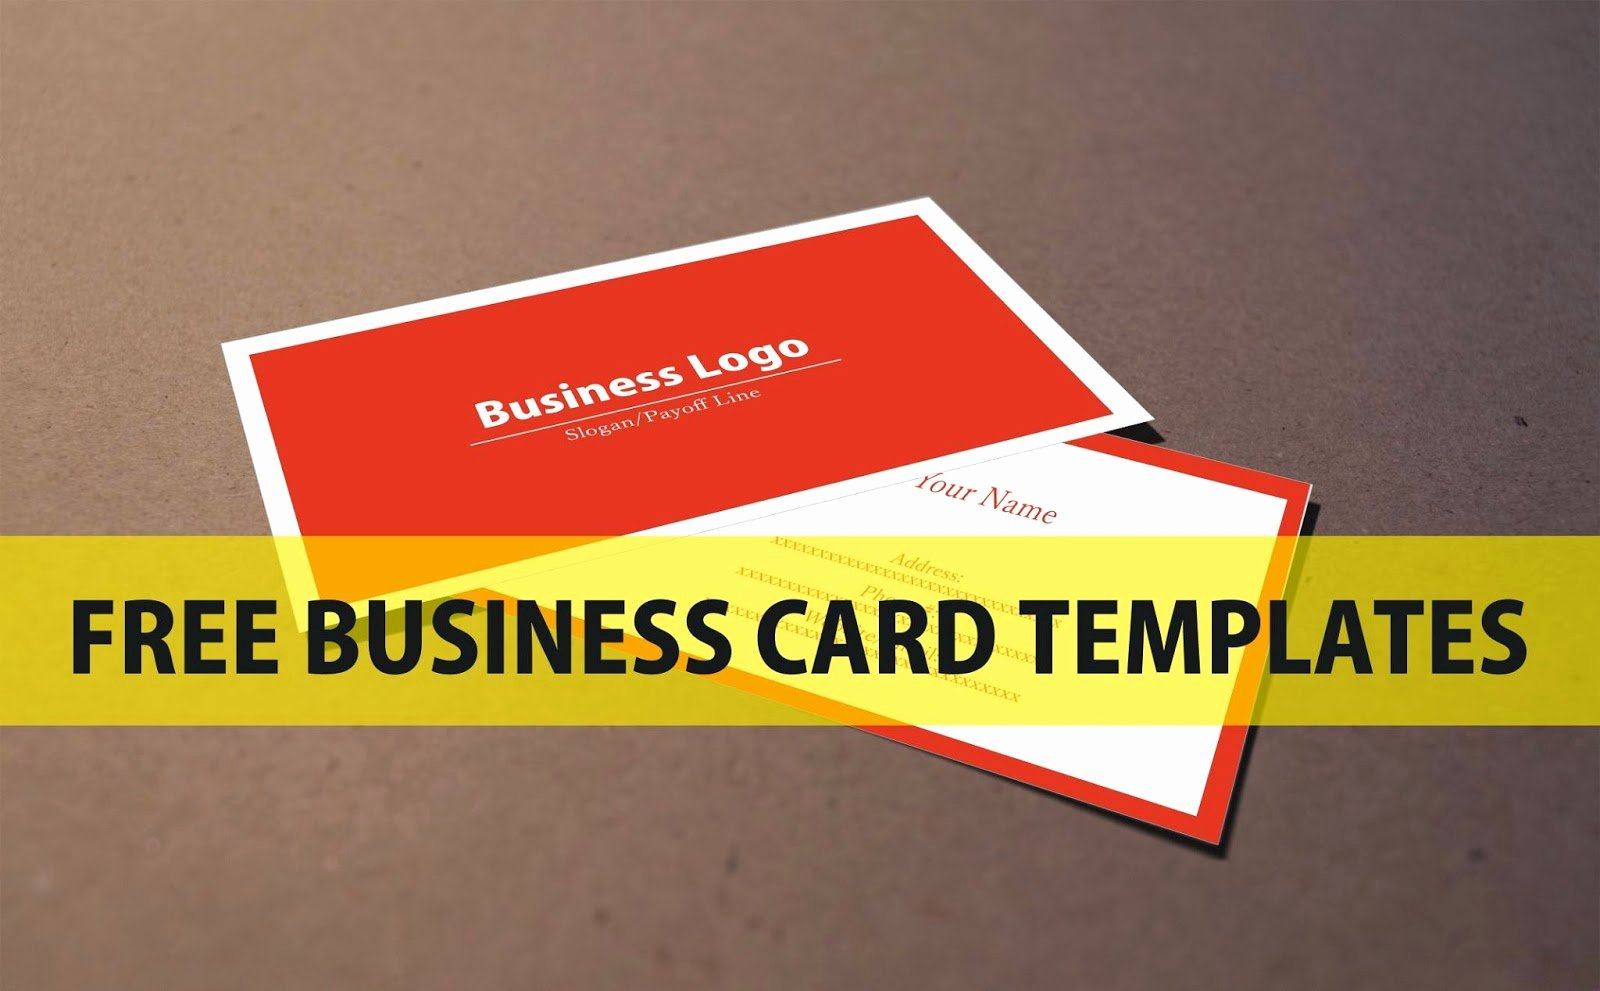 Free Business Card Template Download Coreldraw File A